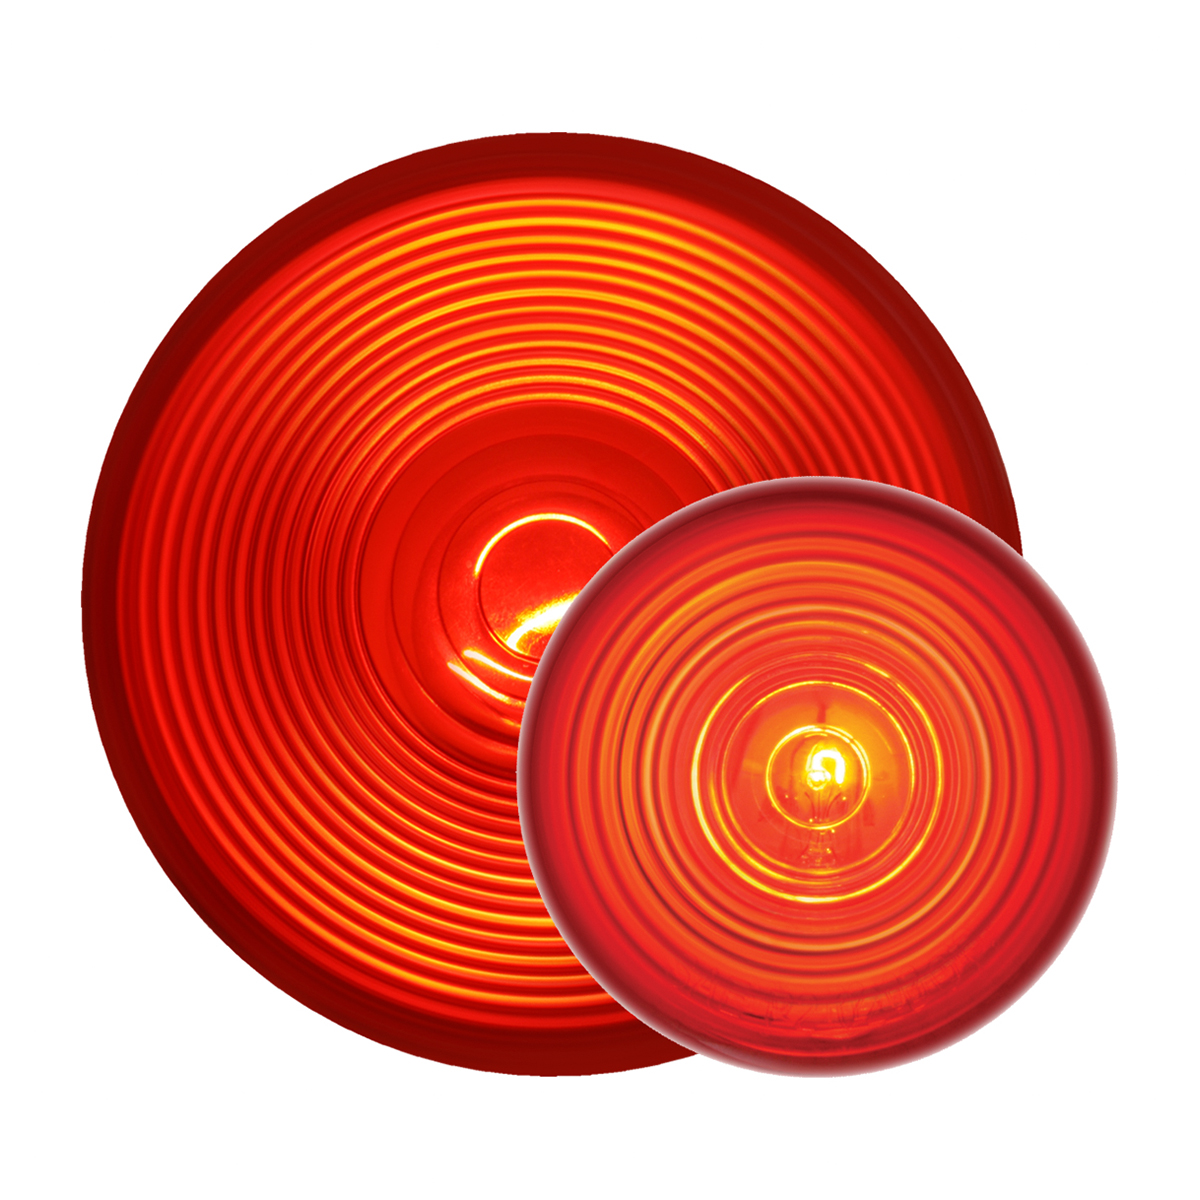 Grand General Stainless Steel Rear Light Panel and Cover with 4-4 inches and 4-2 inches Red Incandescent Light